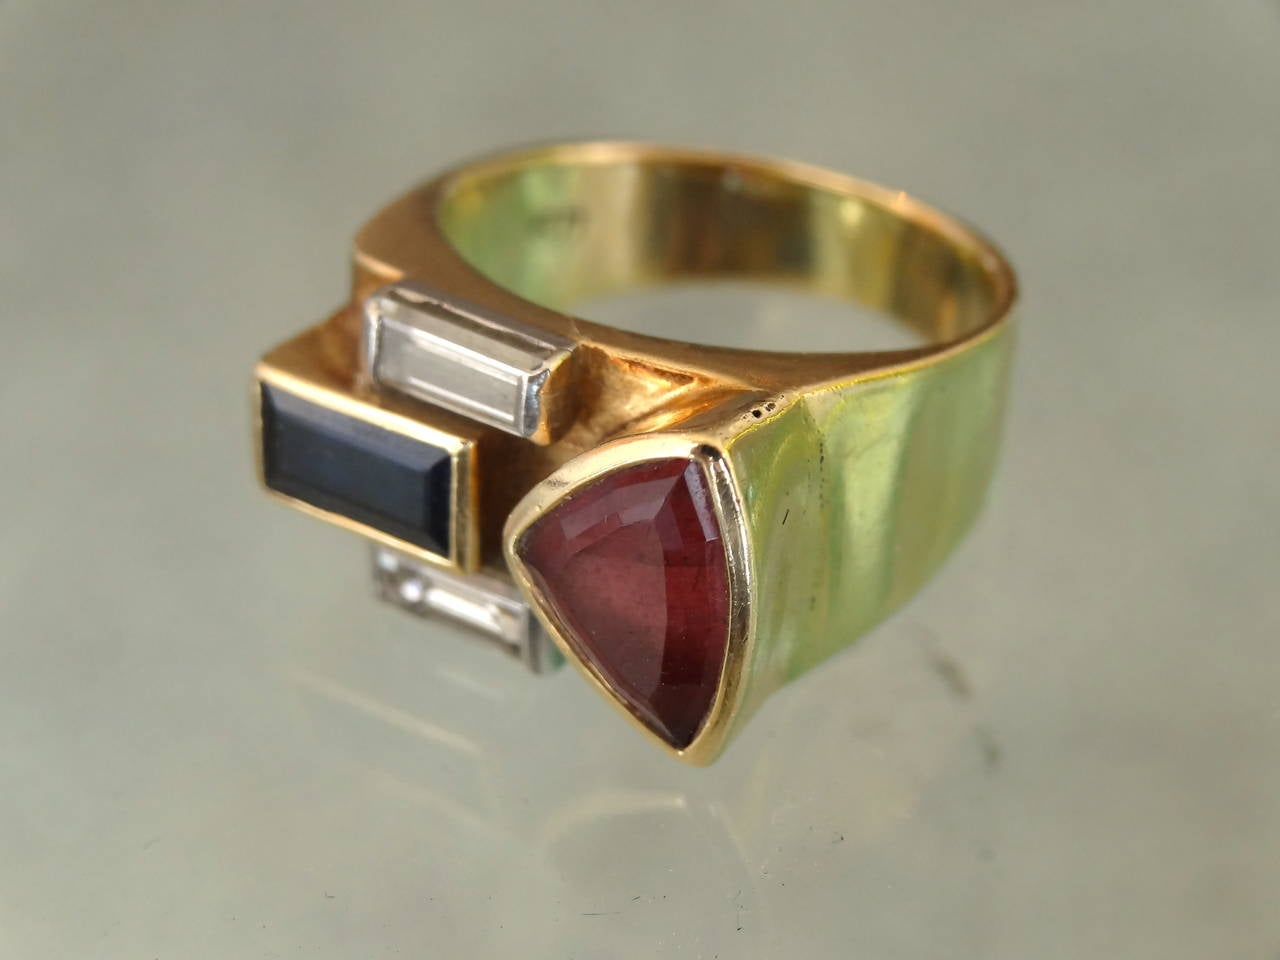 A beautifully designed ring with a multistone modern design. This ring is of 18-karat and set with stones of three colors which compliment each other. Ring has a modern Classic appeal. From 320 Central Park West Estate. I believe the stones to be